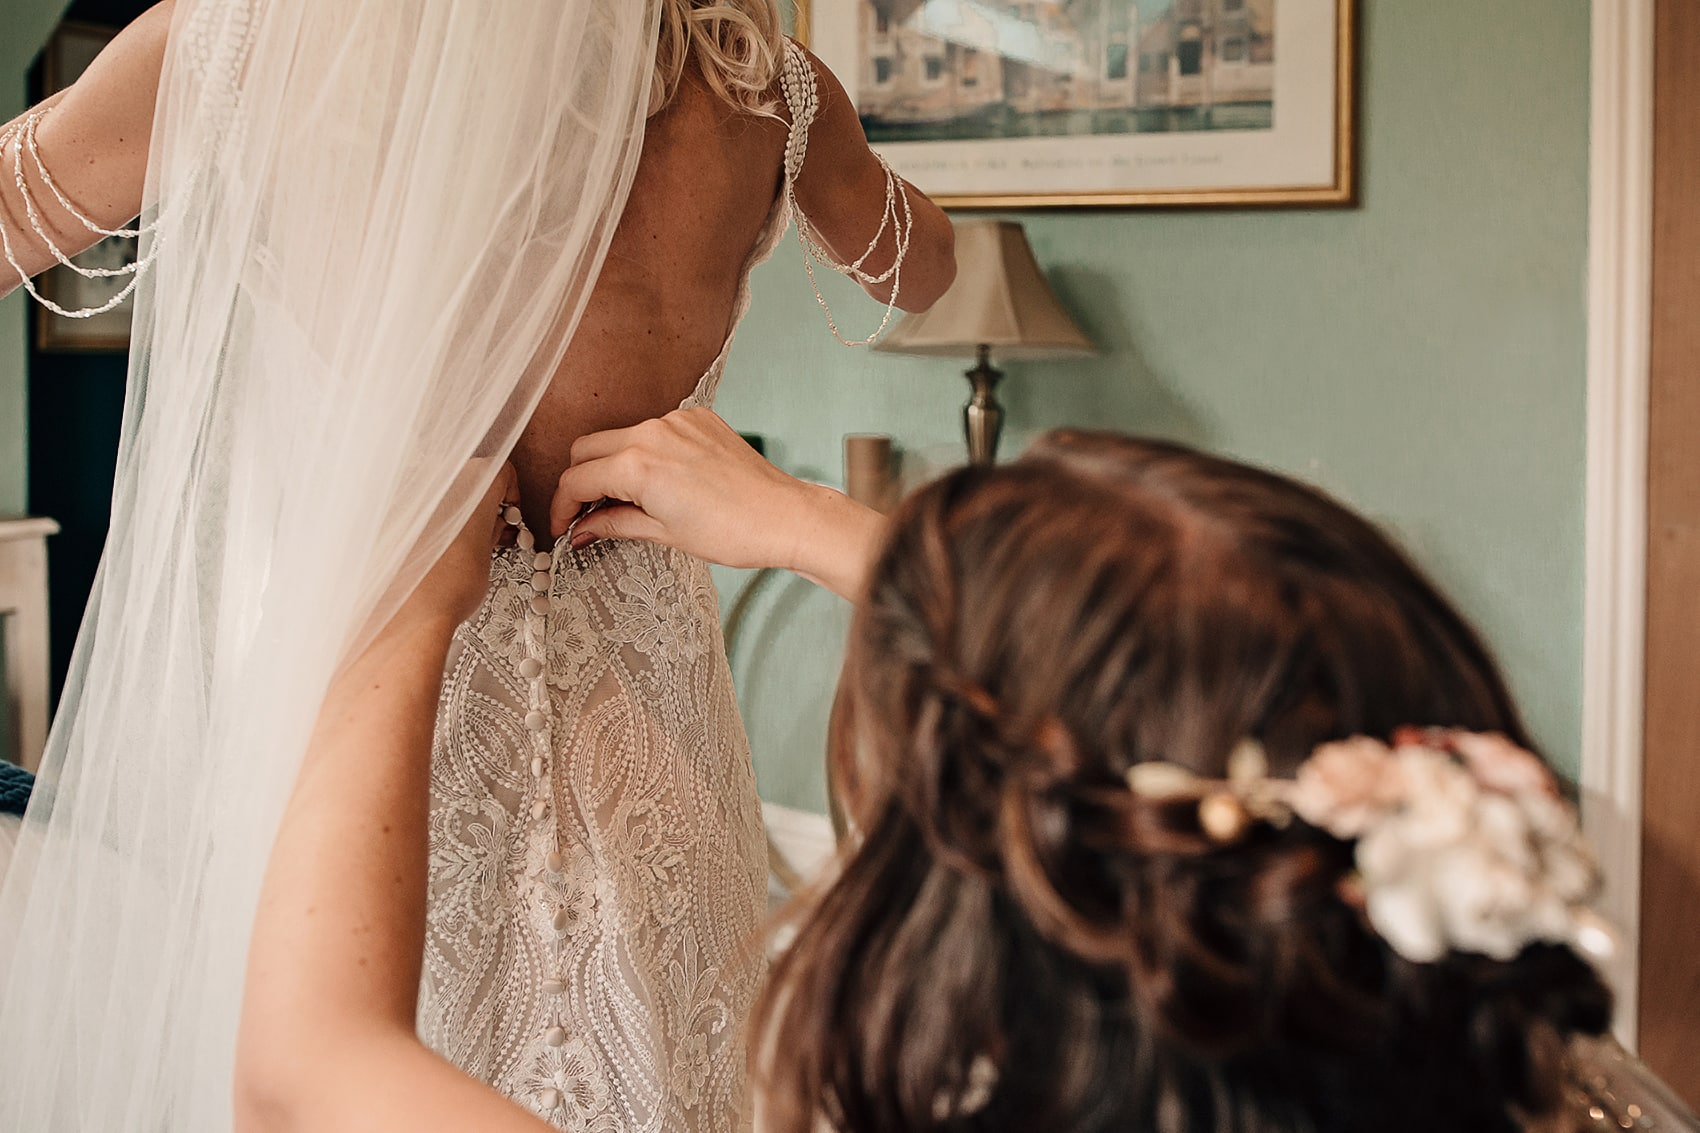 lace wedding dress bridal preparations photography